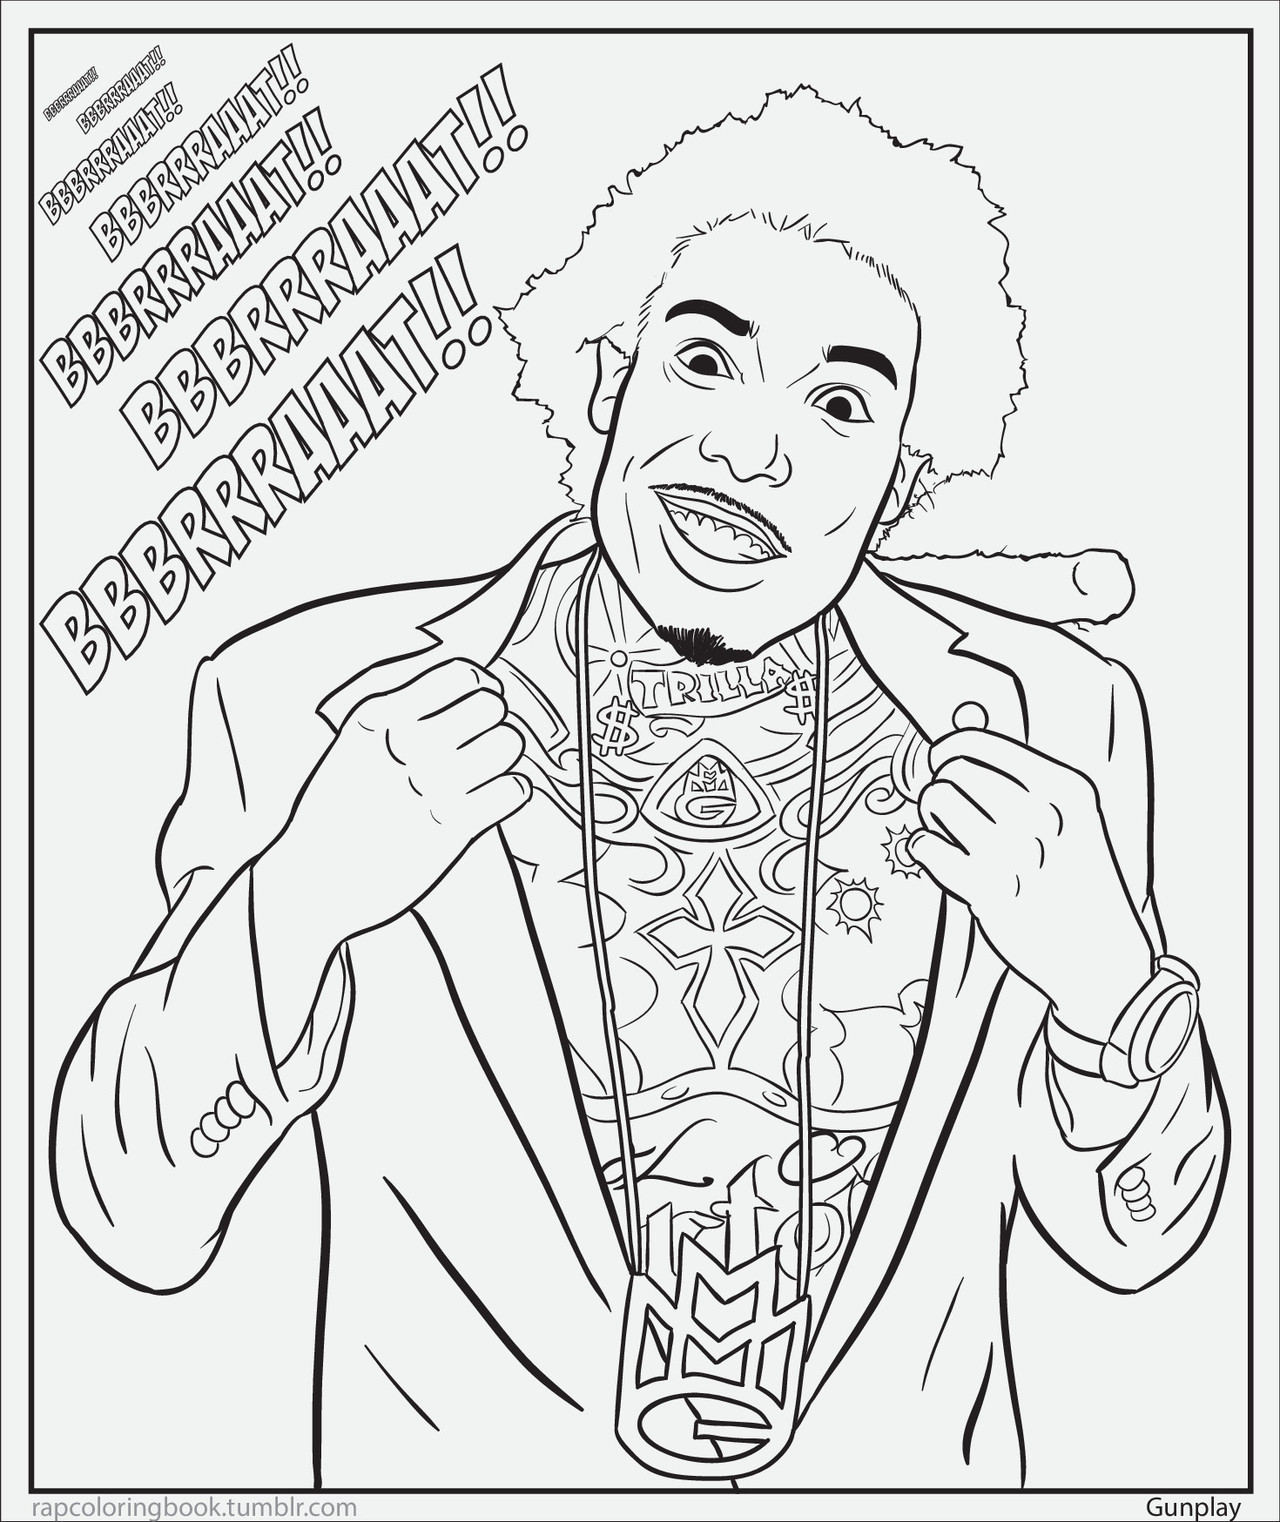 BOGOTA! Click here to download this page. Print it out. Color it. Listen to this while you do so.   rapcoloringbook || @RapColoringBook